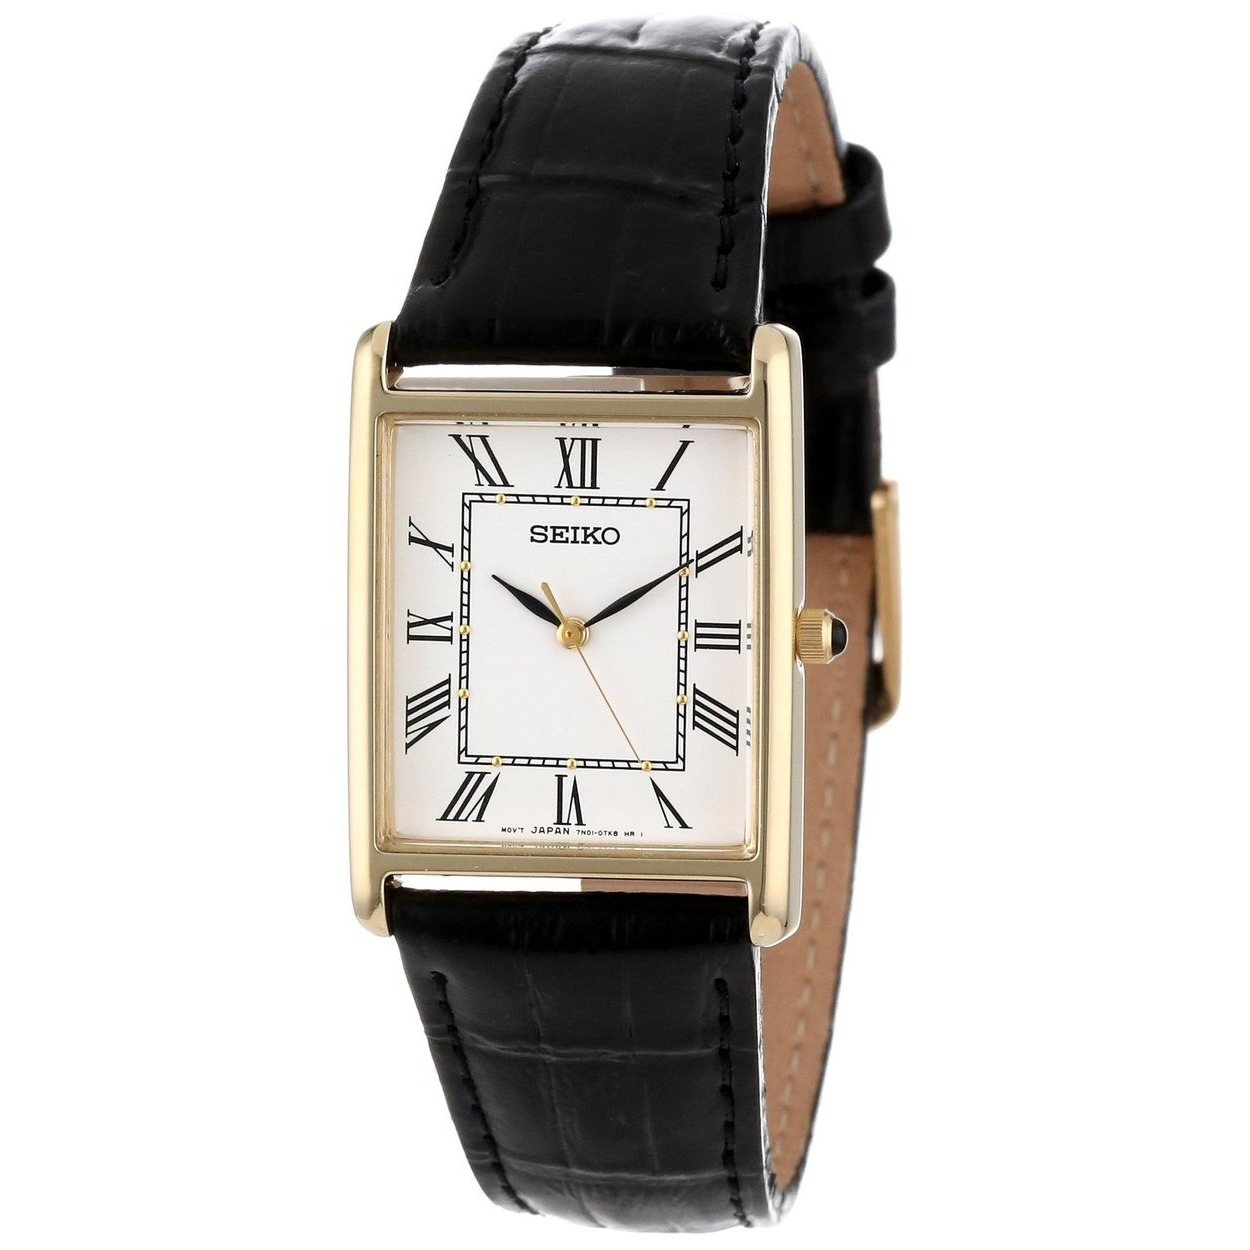 sloped elegant a germany watches it glashutte do in lug high the better dial lang pleasing watch end with georg heyne features made an understated rectangular case is enamel and germans lange bezel framing triple